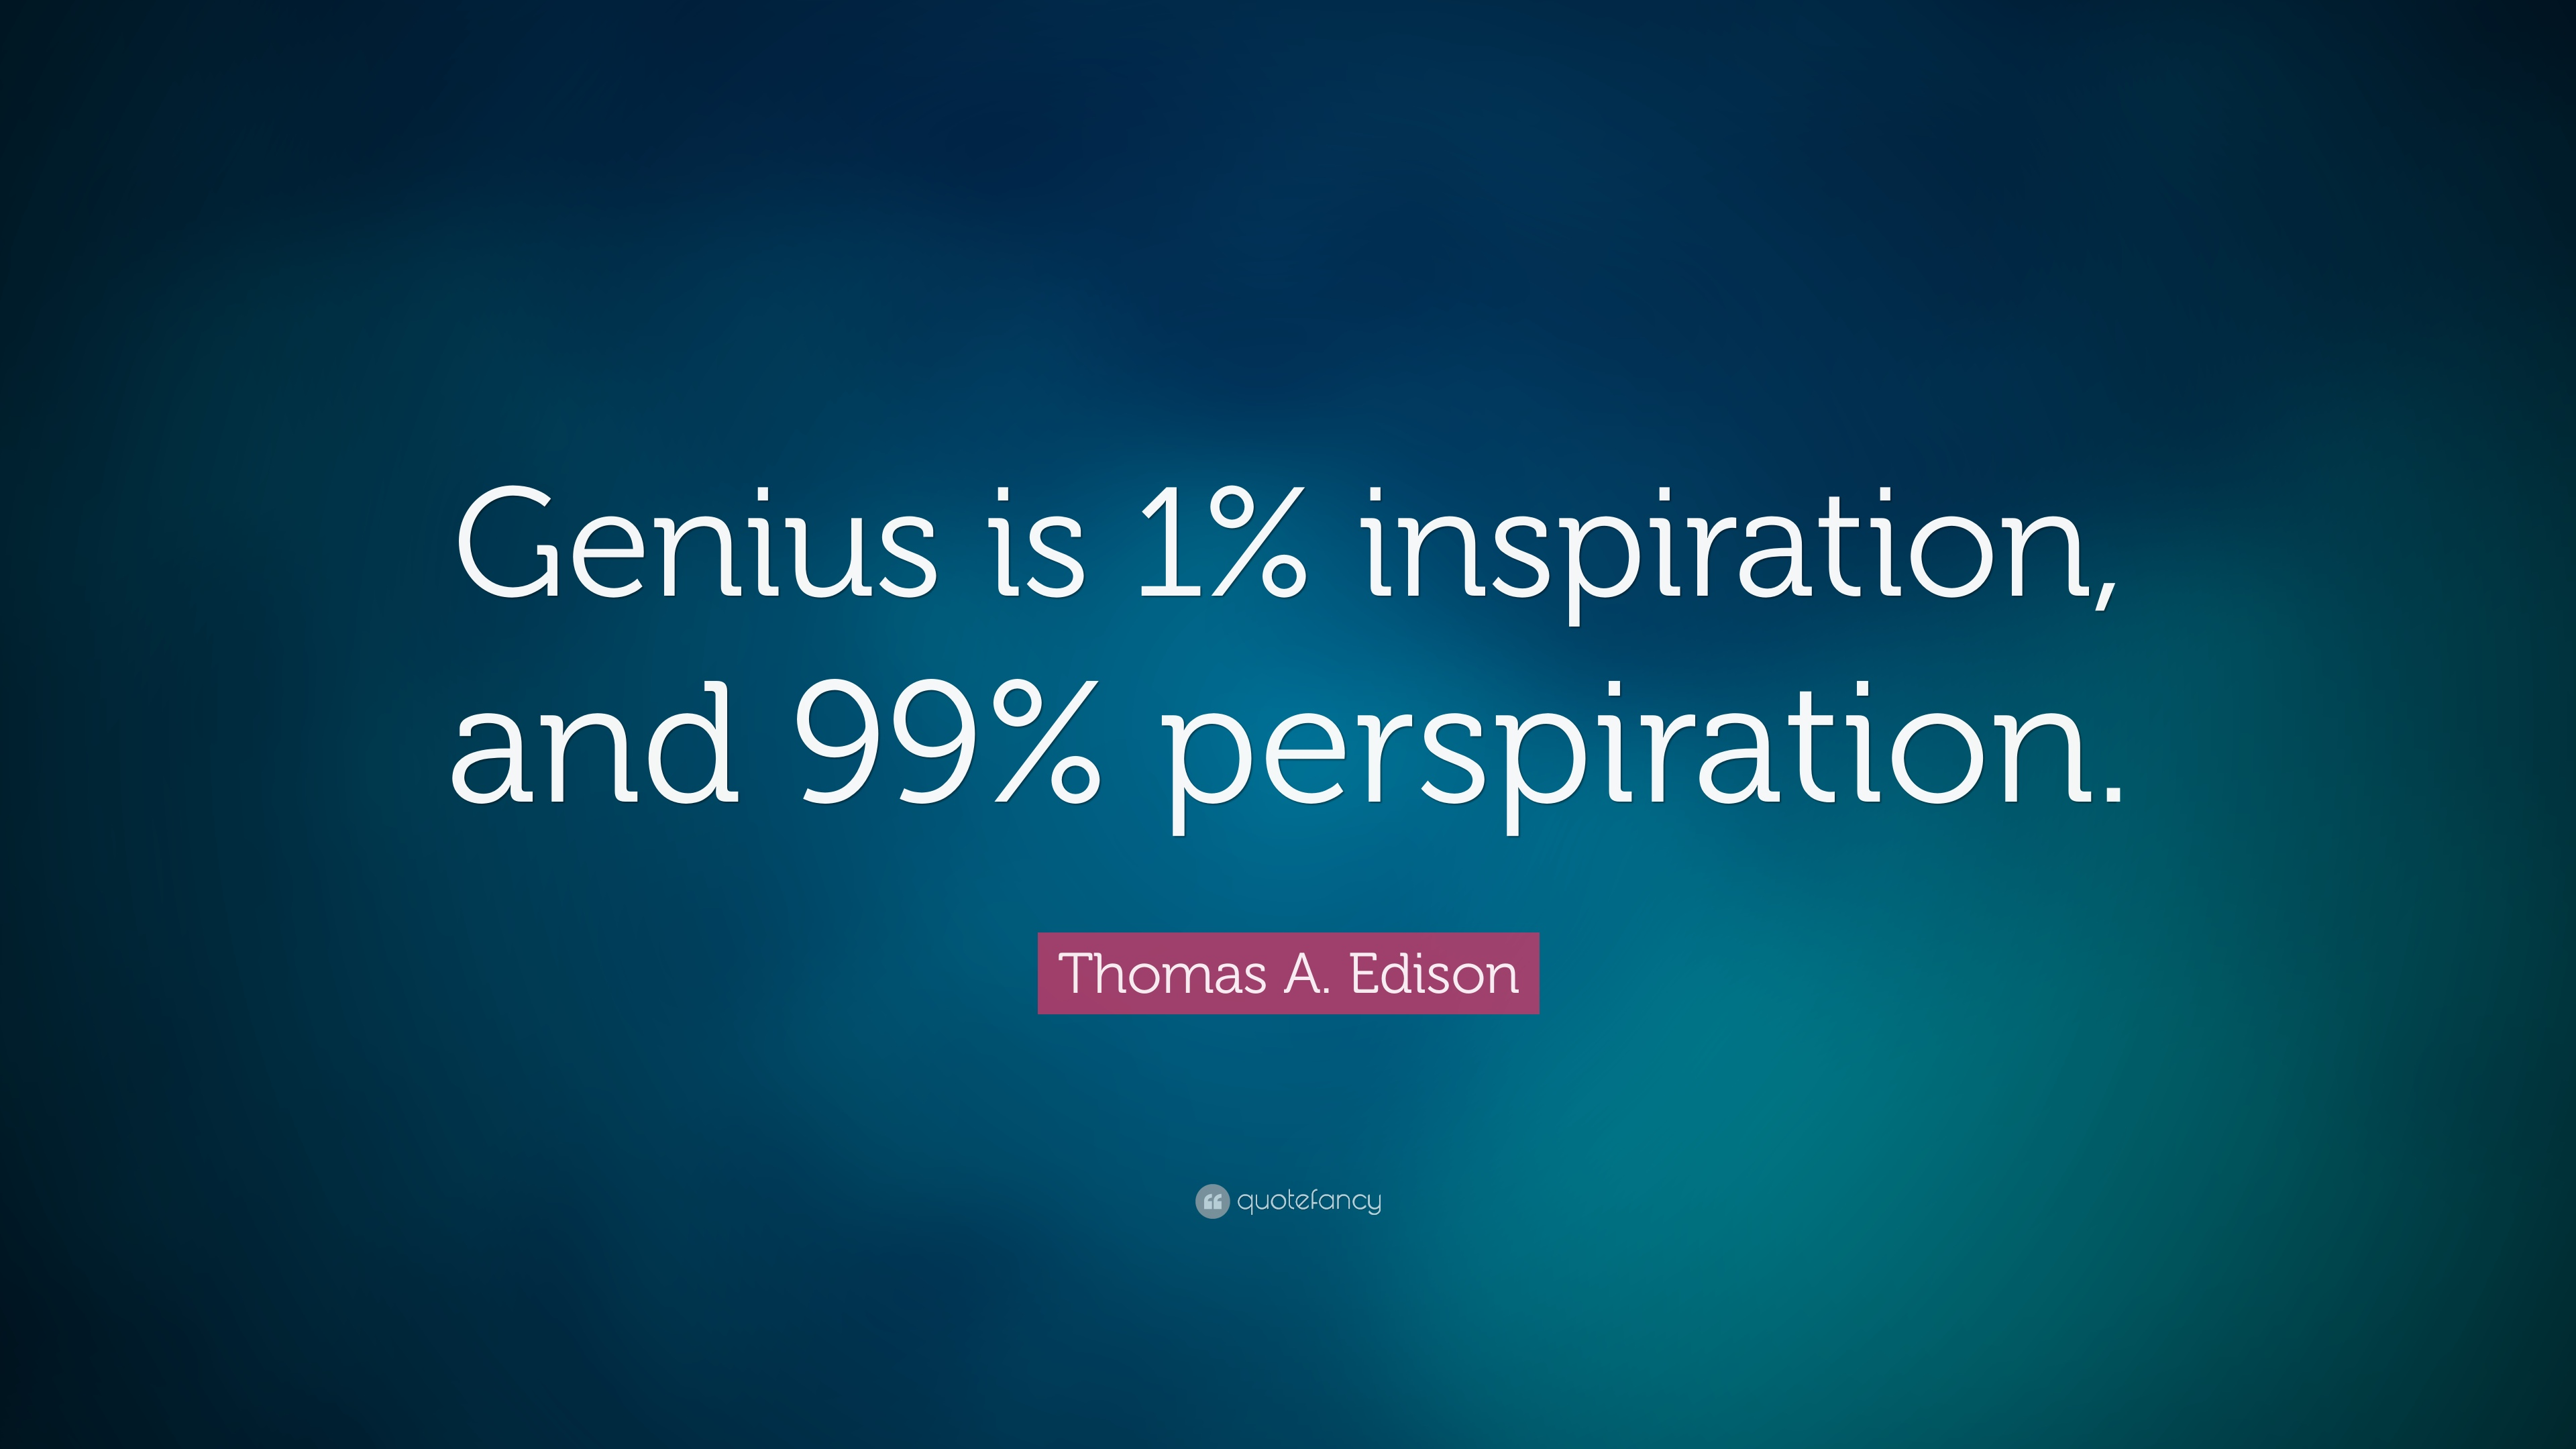 genius is one percent inspiration 99 percent perspiration